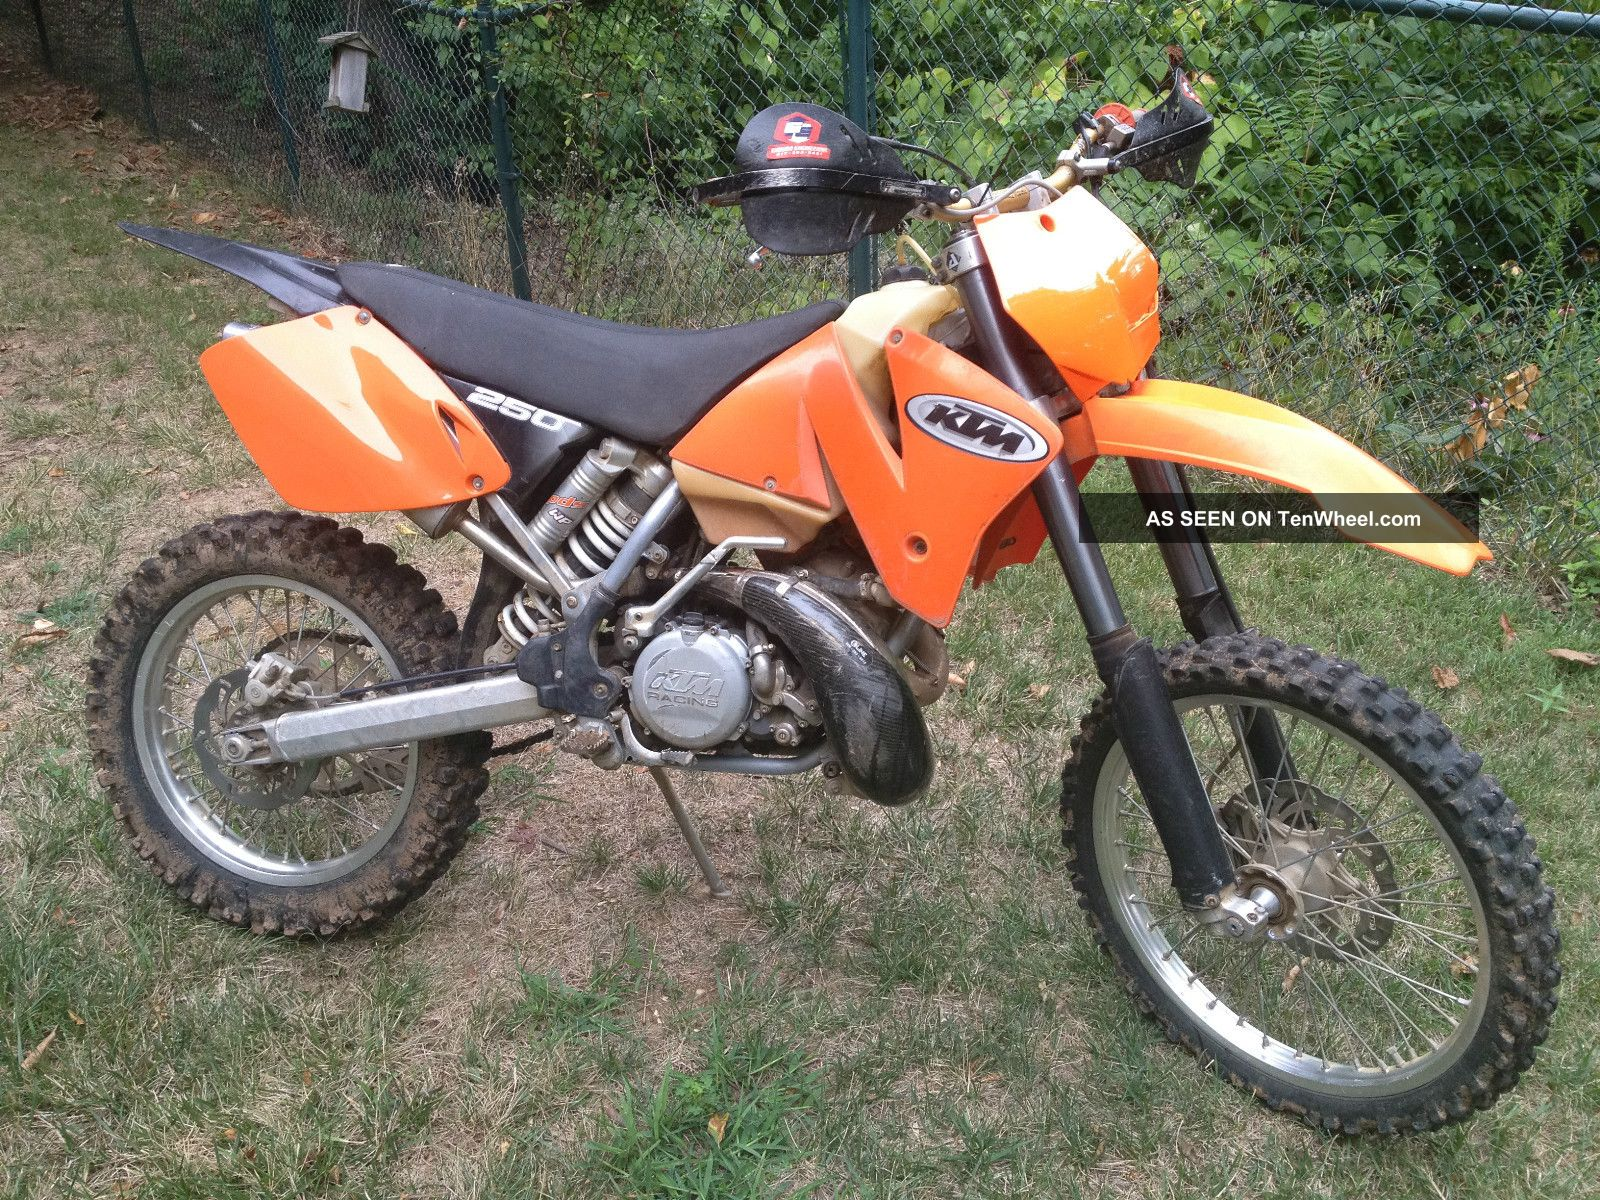 2002 Ktm 250 Exc - Lots Of Modifications, EXC photo